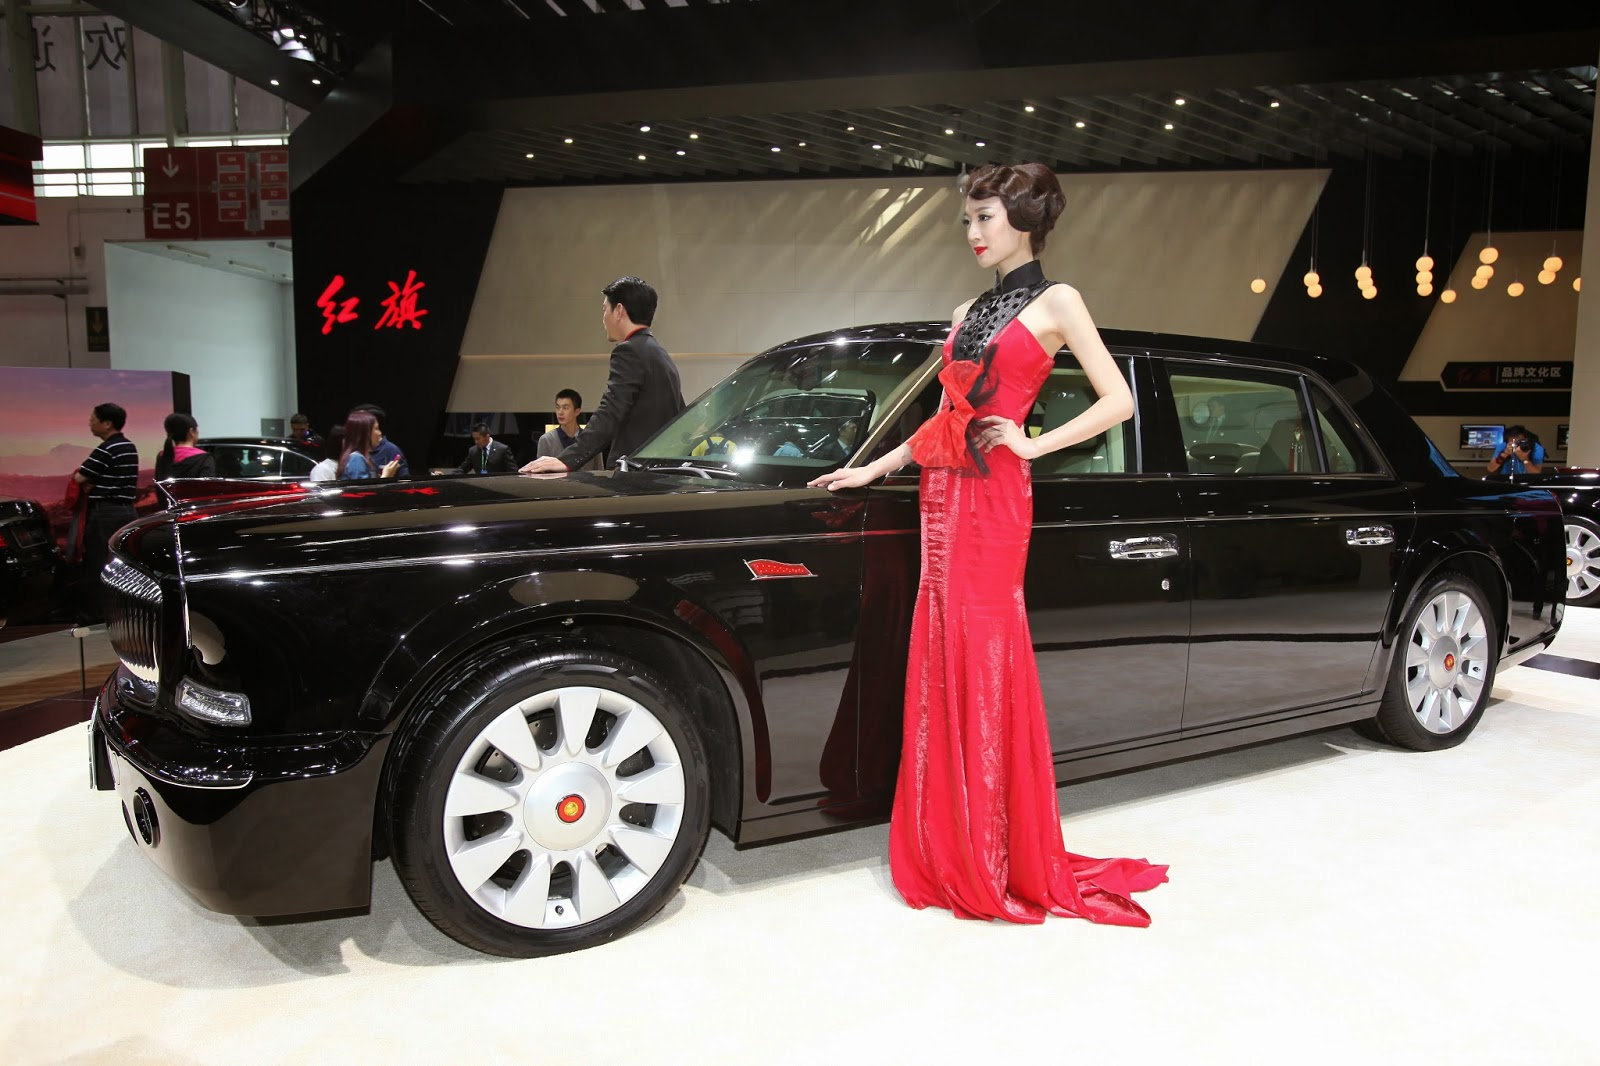 Audi, Auto China 2014, Auto Show, Beijing Auto Show, BMW, Business, Cars, Changan Reaton, Chevrolet, China, Economy, Estate Volvo, Ferrari, Ford, Jeep, KTM, Lamborghini, Mclaren, Sports Cars, Toyota,